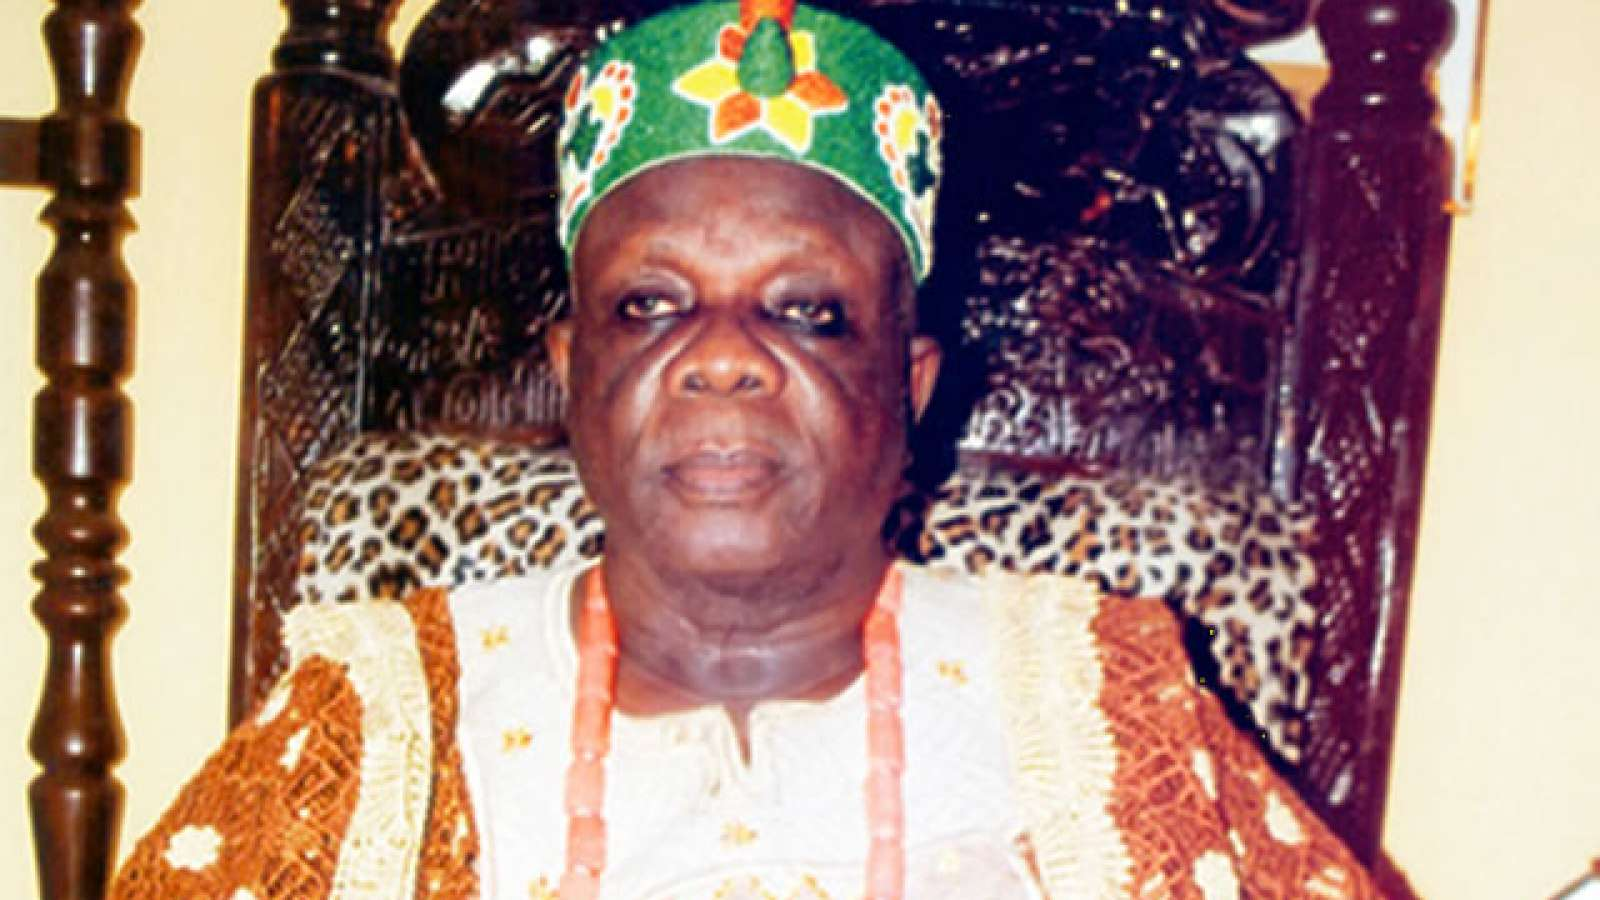 Why we kidnapped Lagos oba — Abductors disclose   Nigerian